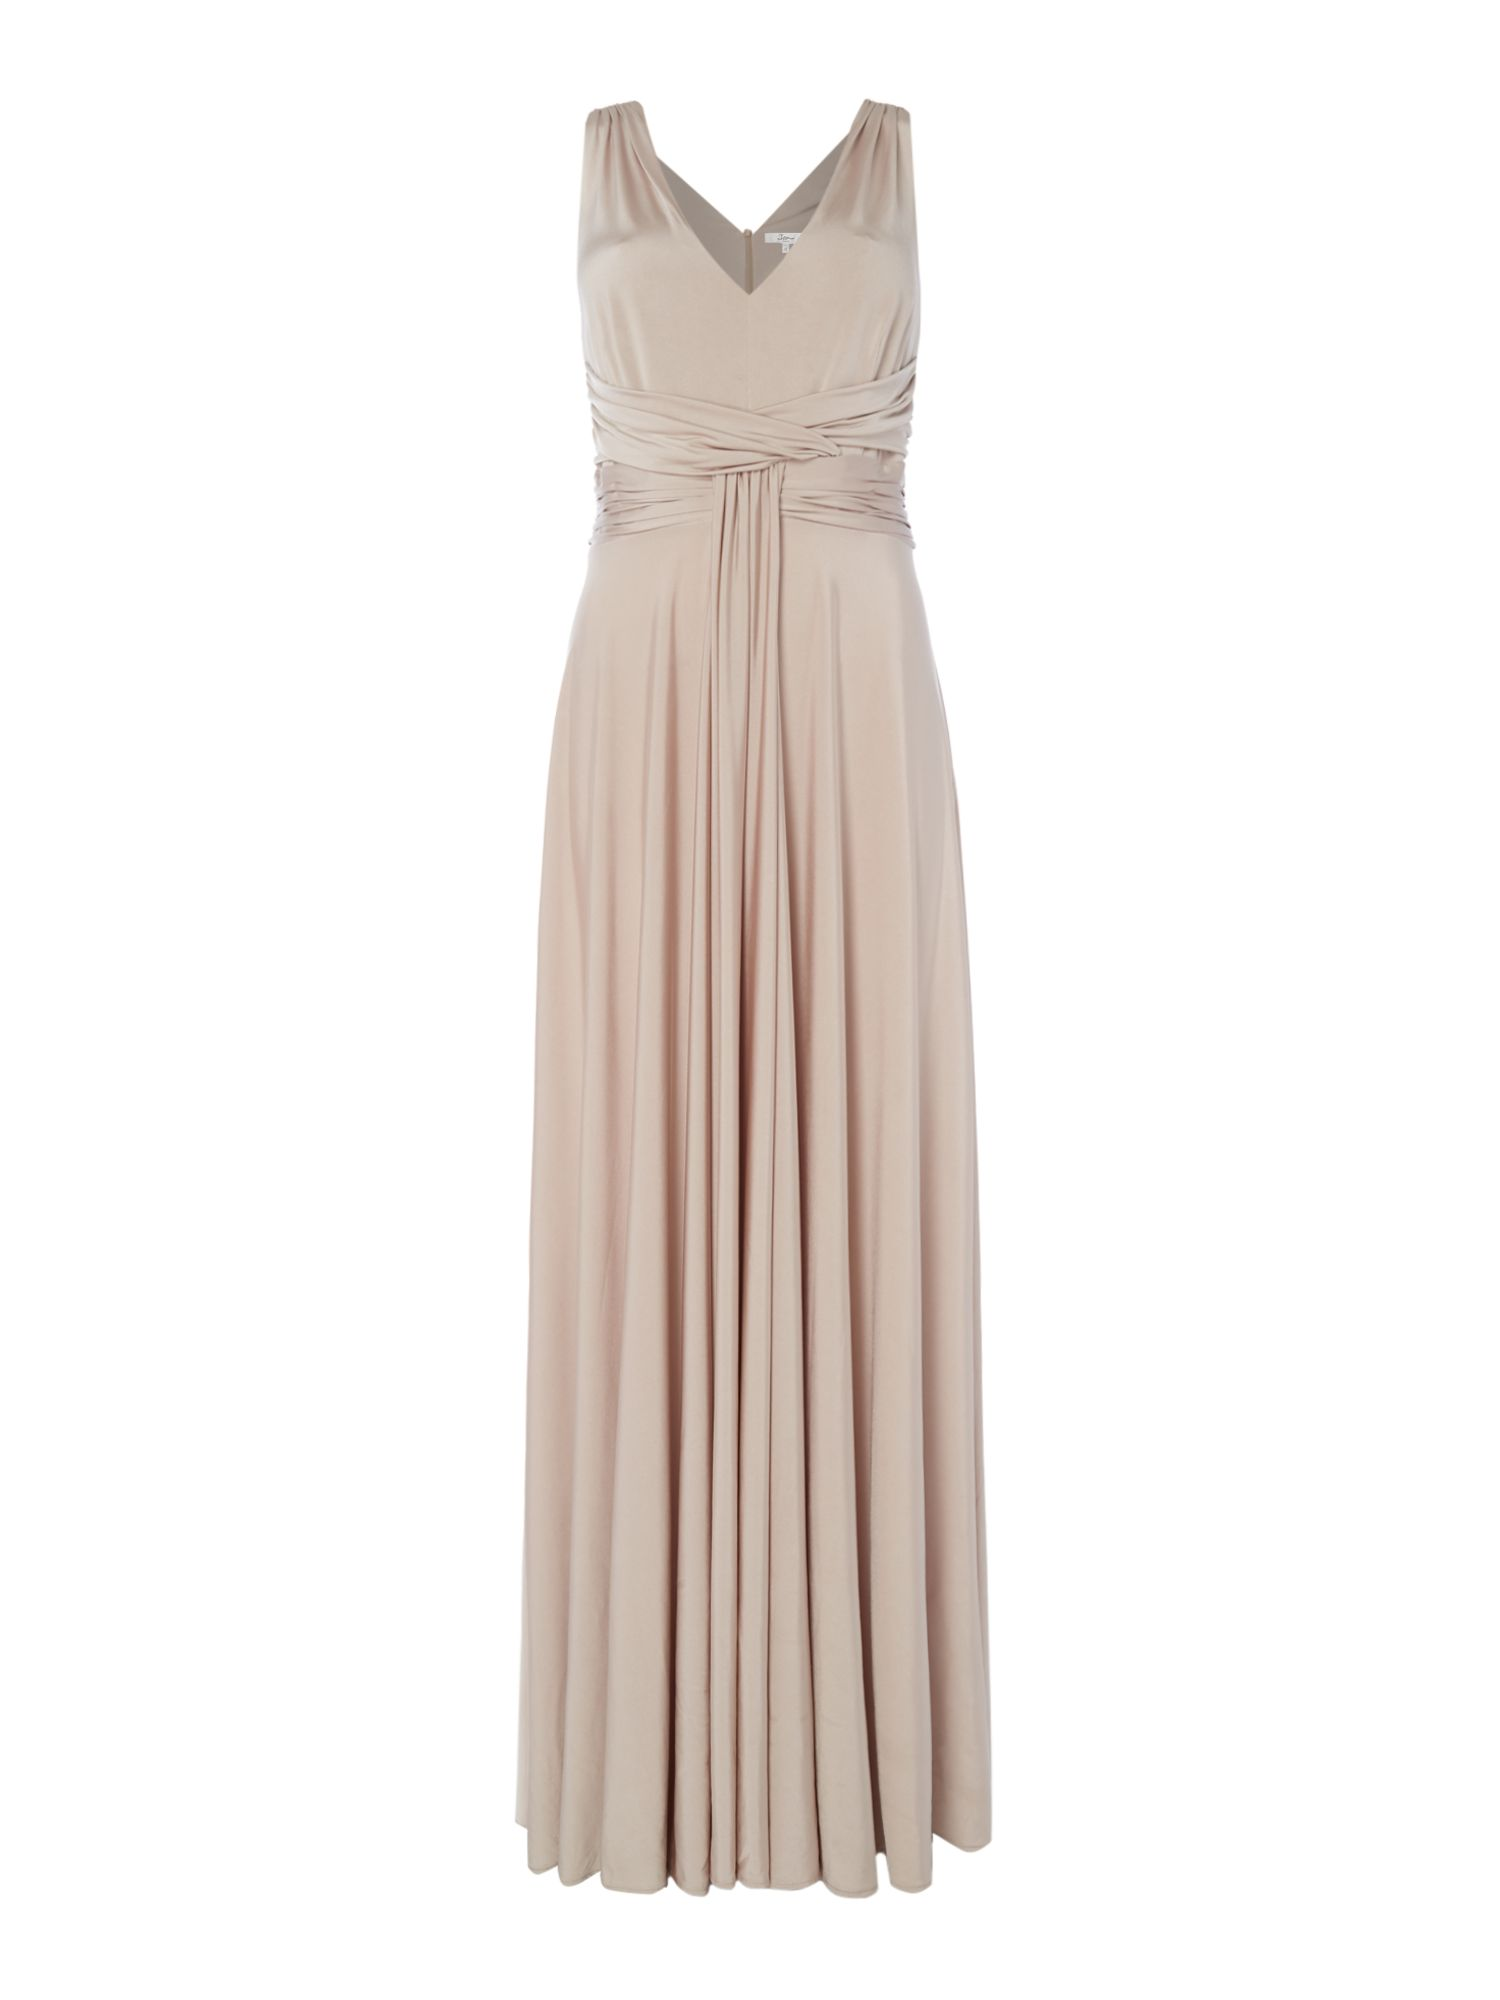 ISSA Luna Ruched Maxi Dress, Champagne